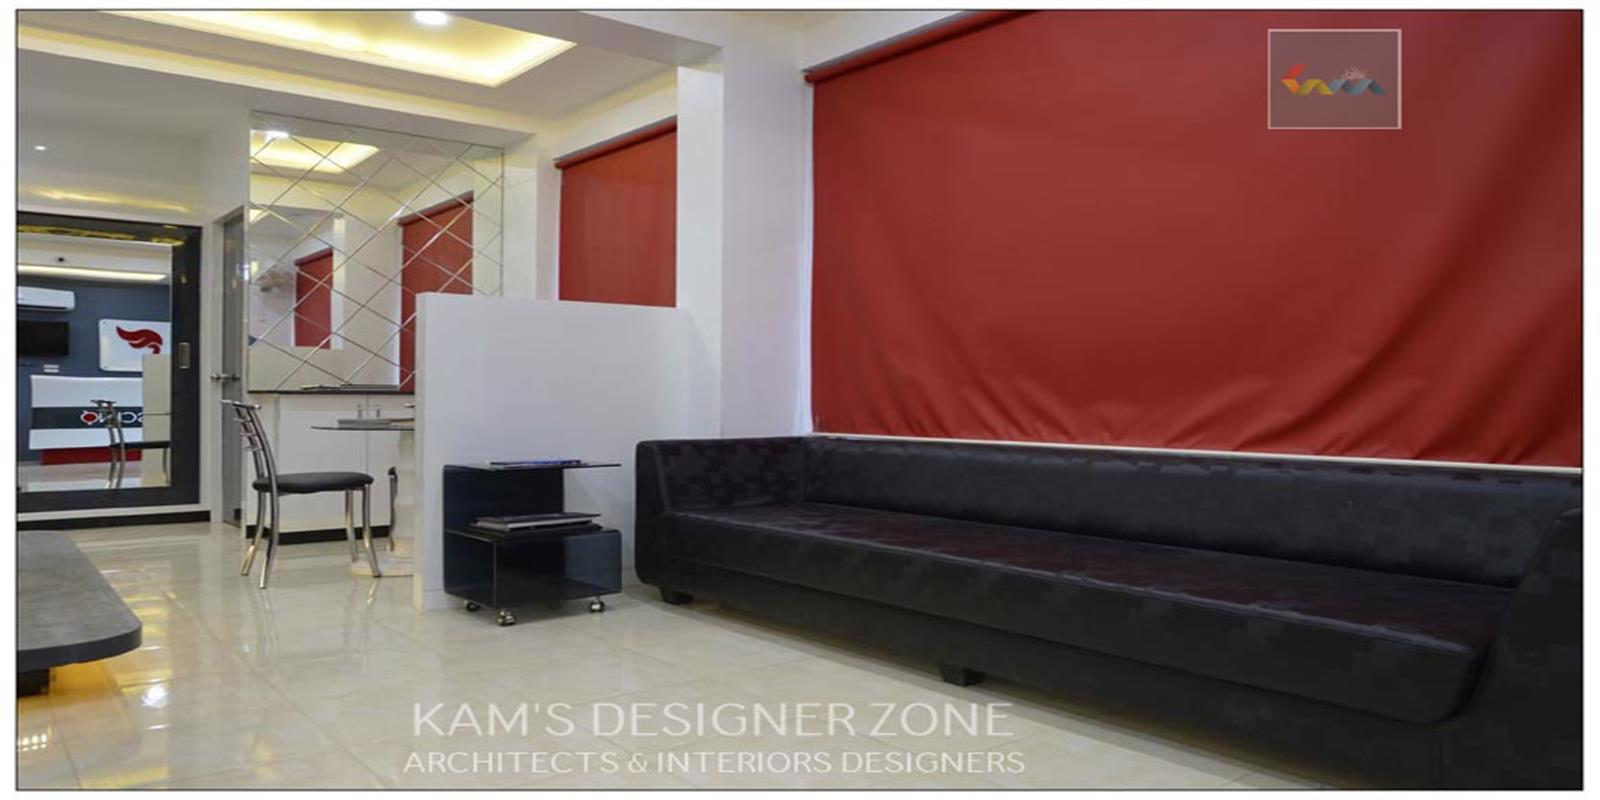 Interior Designer in Kaspate Wasti